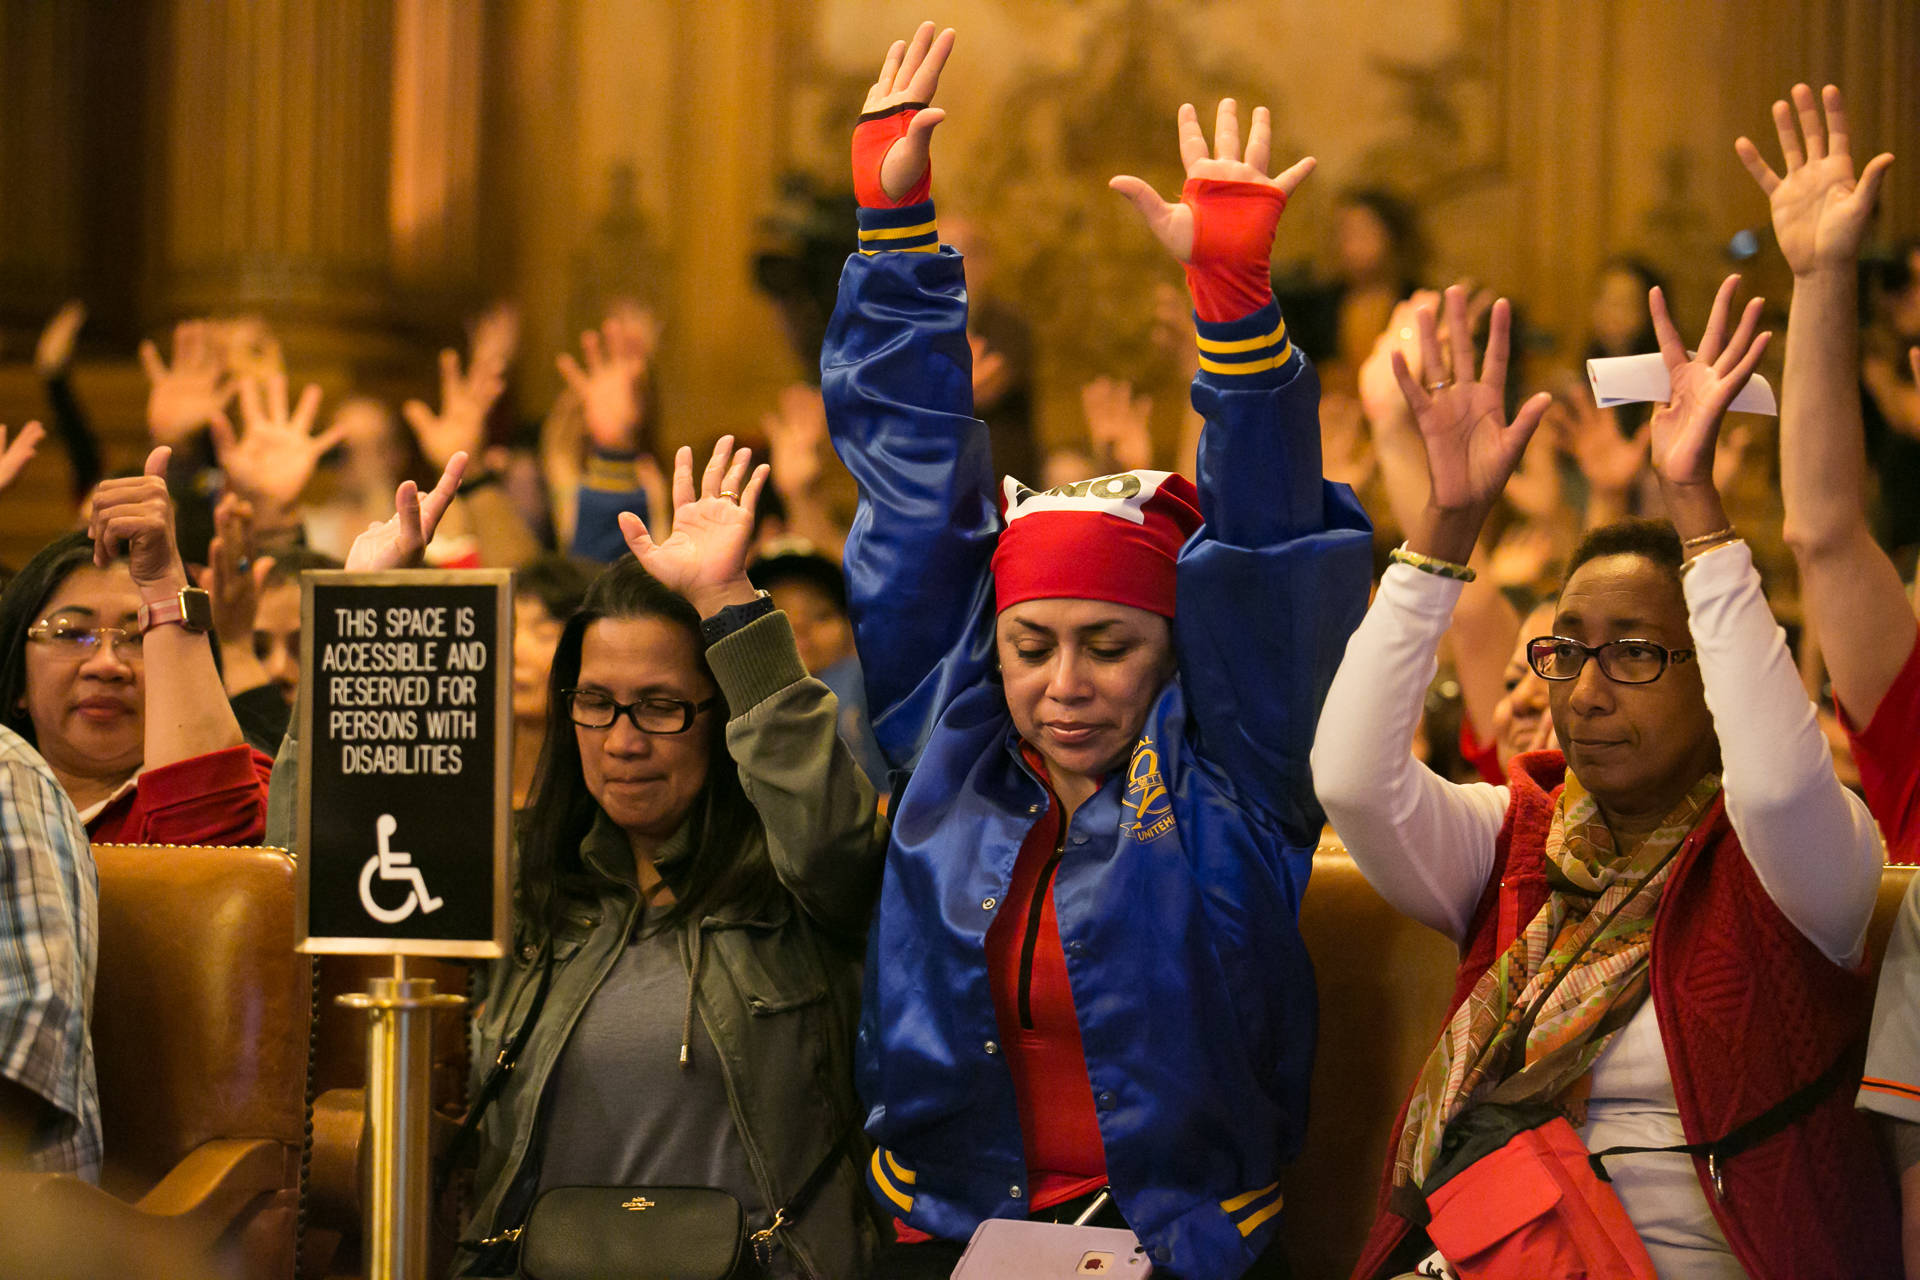 Camucha King (middle right) and Nicole Drysdale (right) gesture in affirmation to a speaker during the public comment section of the San Francisco Board of Supervisors meeting on Nov. 2, 2018. King and Drysdale work at the St. Regis hotel in the food and beverage department. J.P. Dobrin/KQED